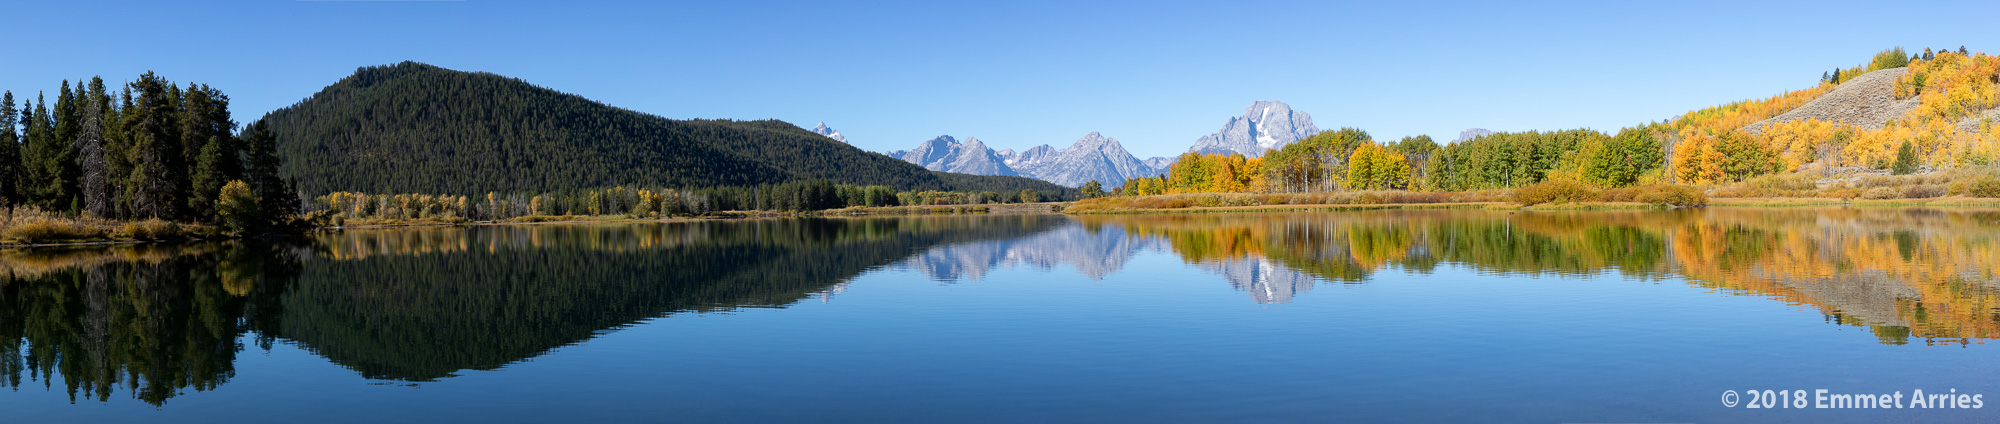 In the fall, the trees at Oxbow bend turn brilliant reds, yellows, and oranges. It is truly magnificent. I love panoramas because they give us a more realistic view of a landscape.